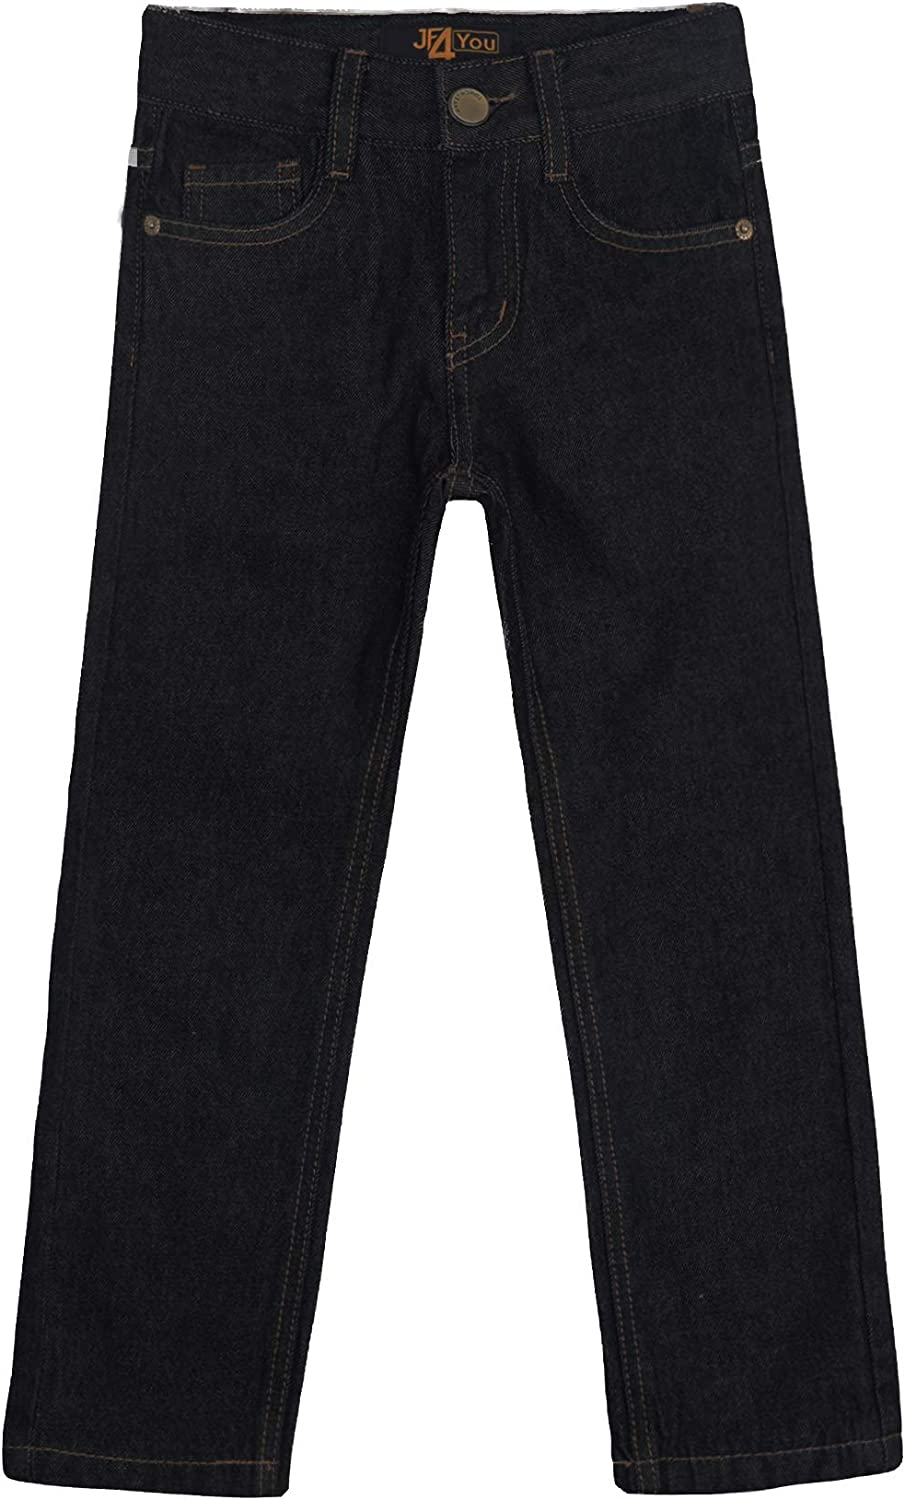 Designer Boys Jeans Adjustable Waist Trousers Black Blue Denim Wash Age 2 3 4 5 6 7 8 9 10 11 12 13 14 15 16 Years Justfound4You